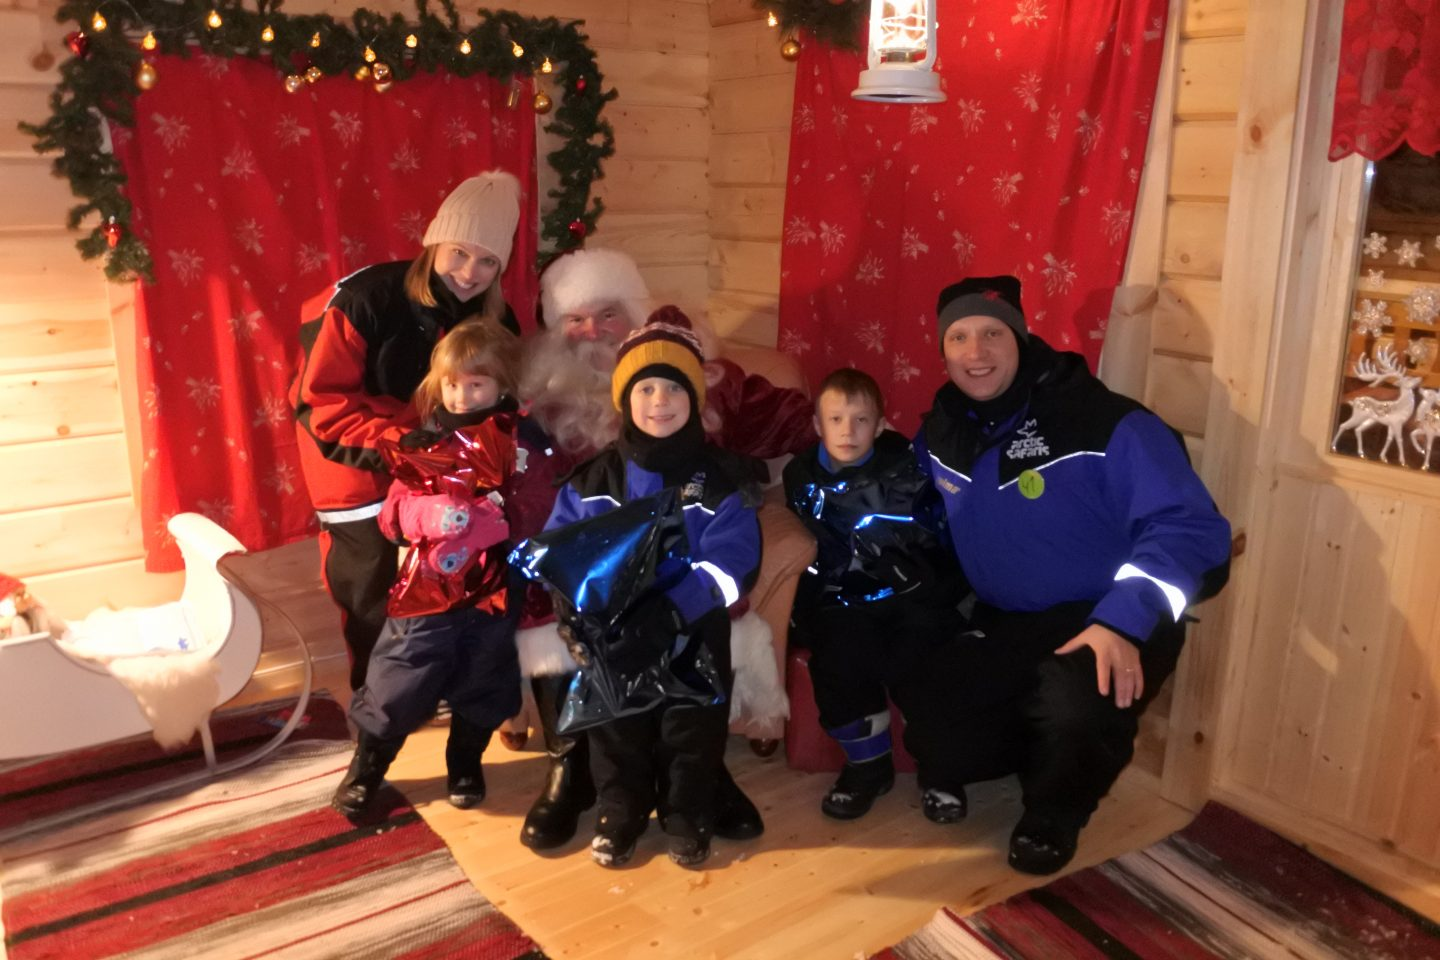 A visit to see Santa in Lapland {including a video}